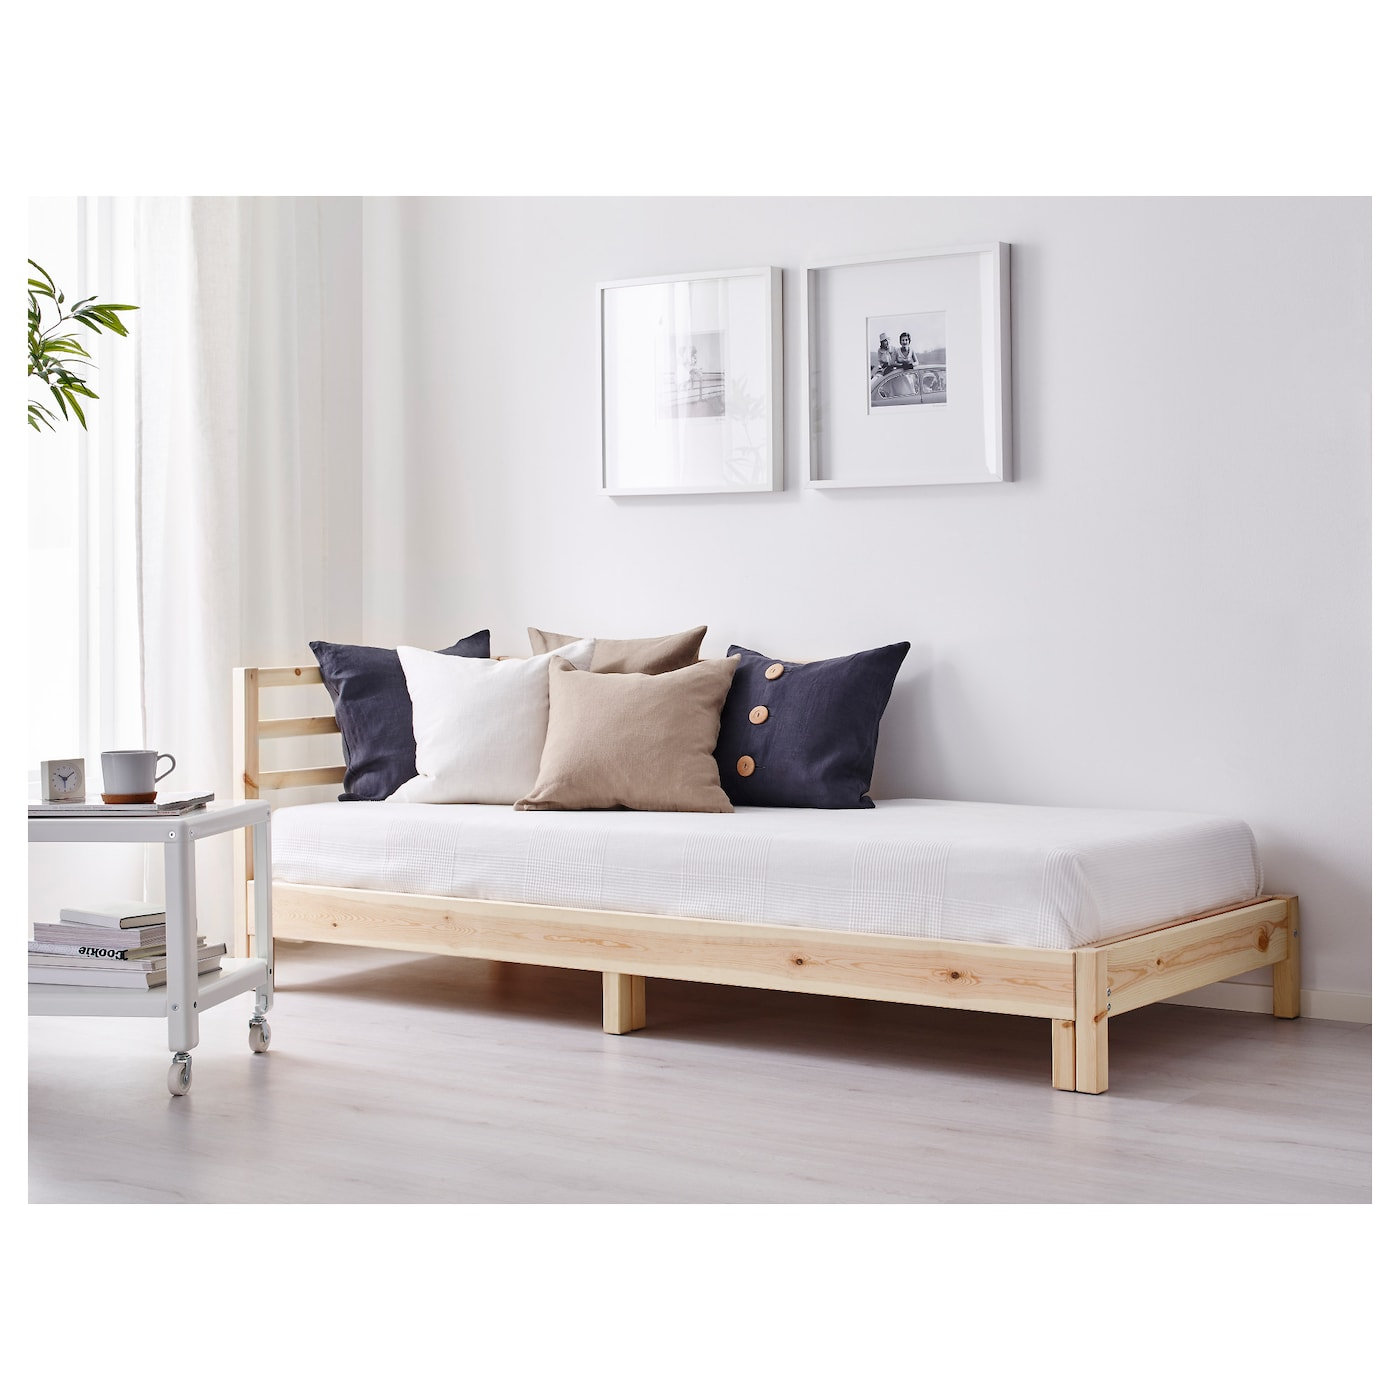 tarva day bed frame pine 80 x 200 cm ikea. Black Bedroom Furniture Sets. Home Design Ideas